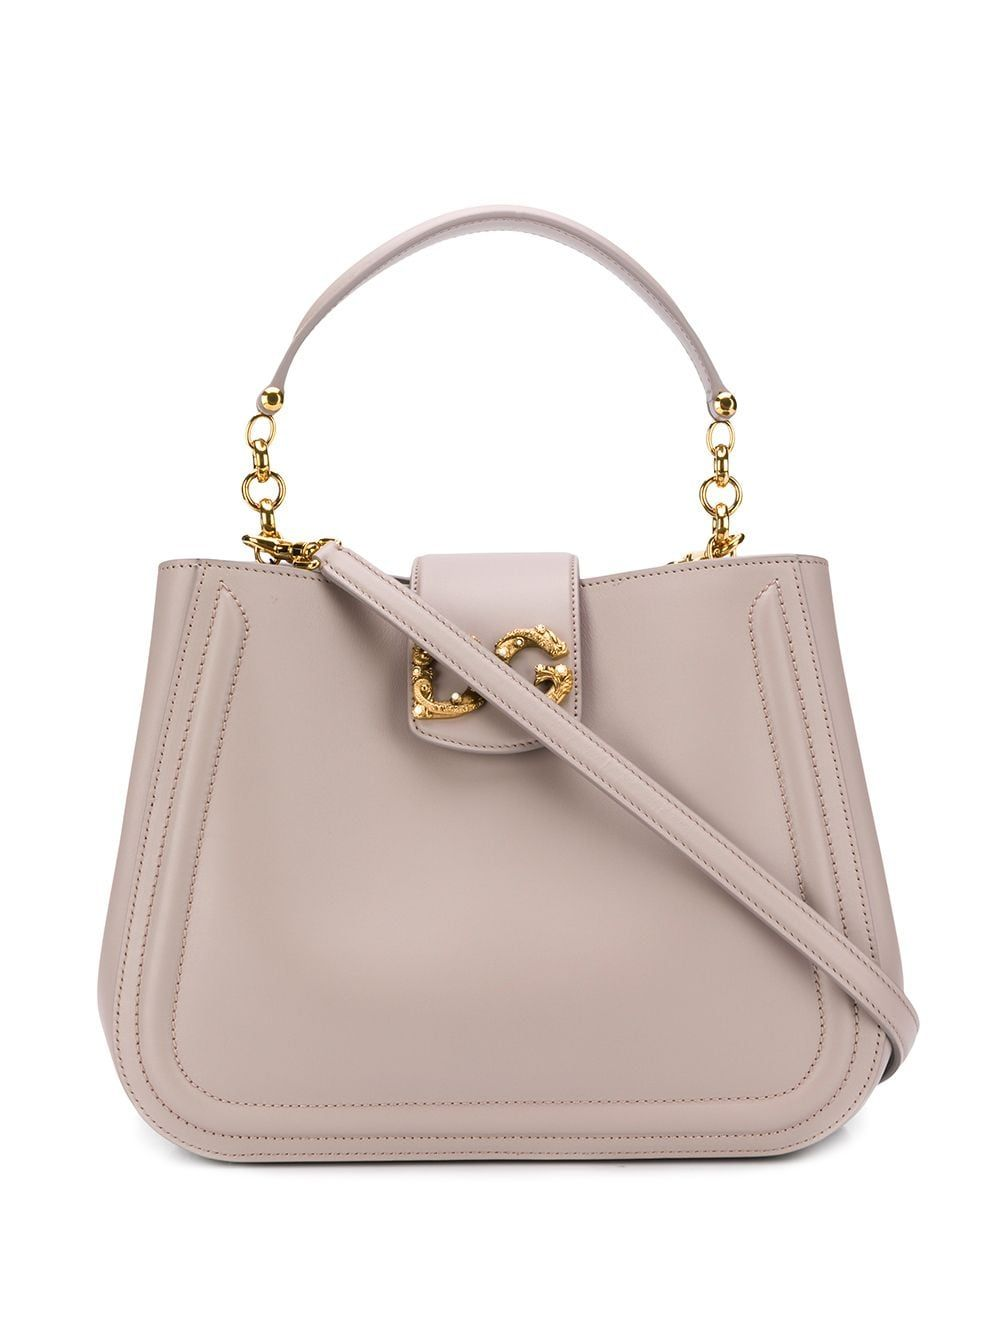 Dolce & Gabbana DG Amore tote - Pink